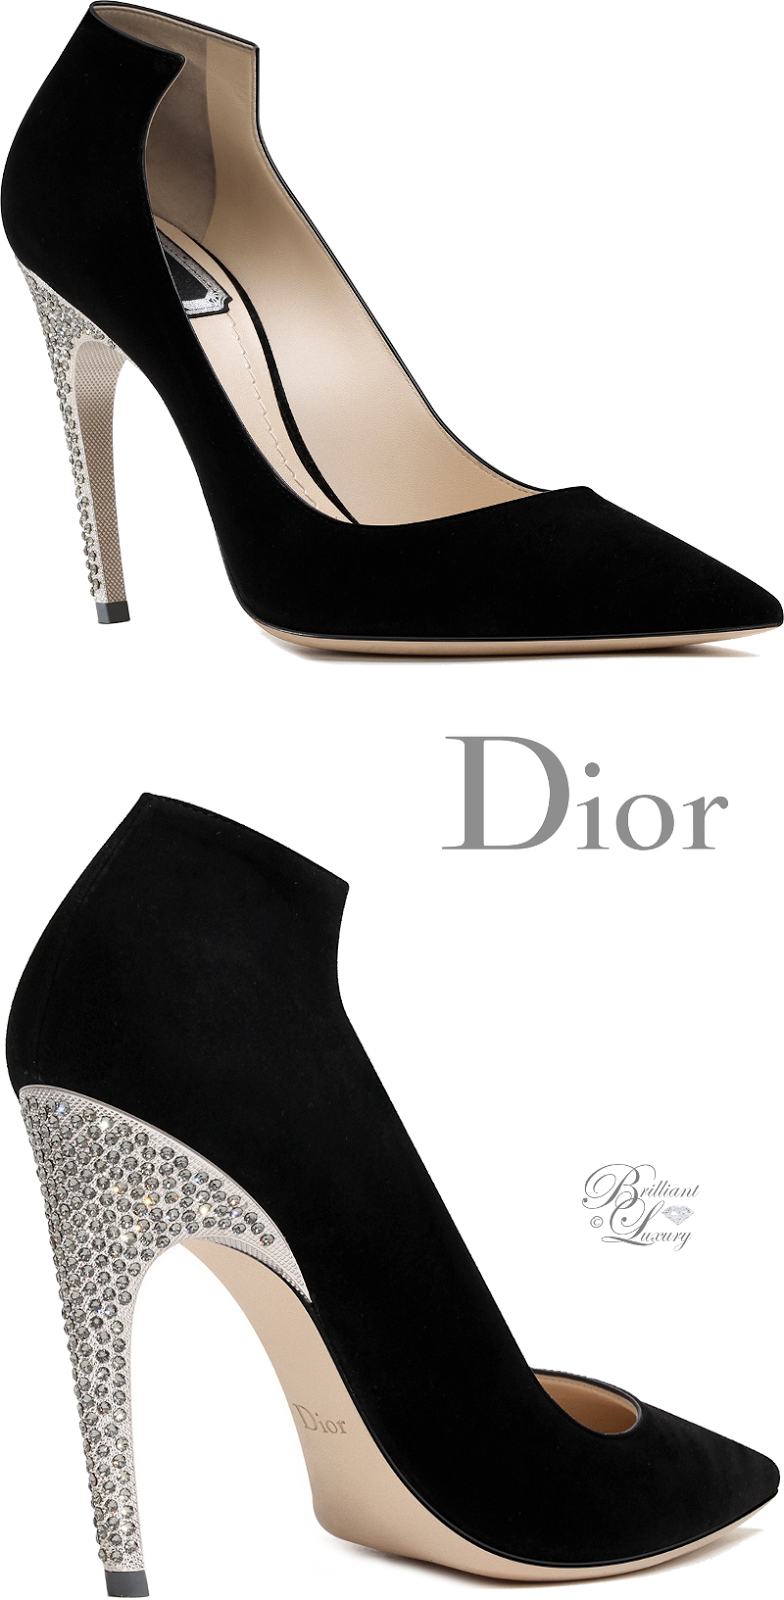 Dior Blue Shoes